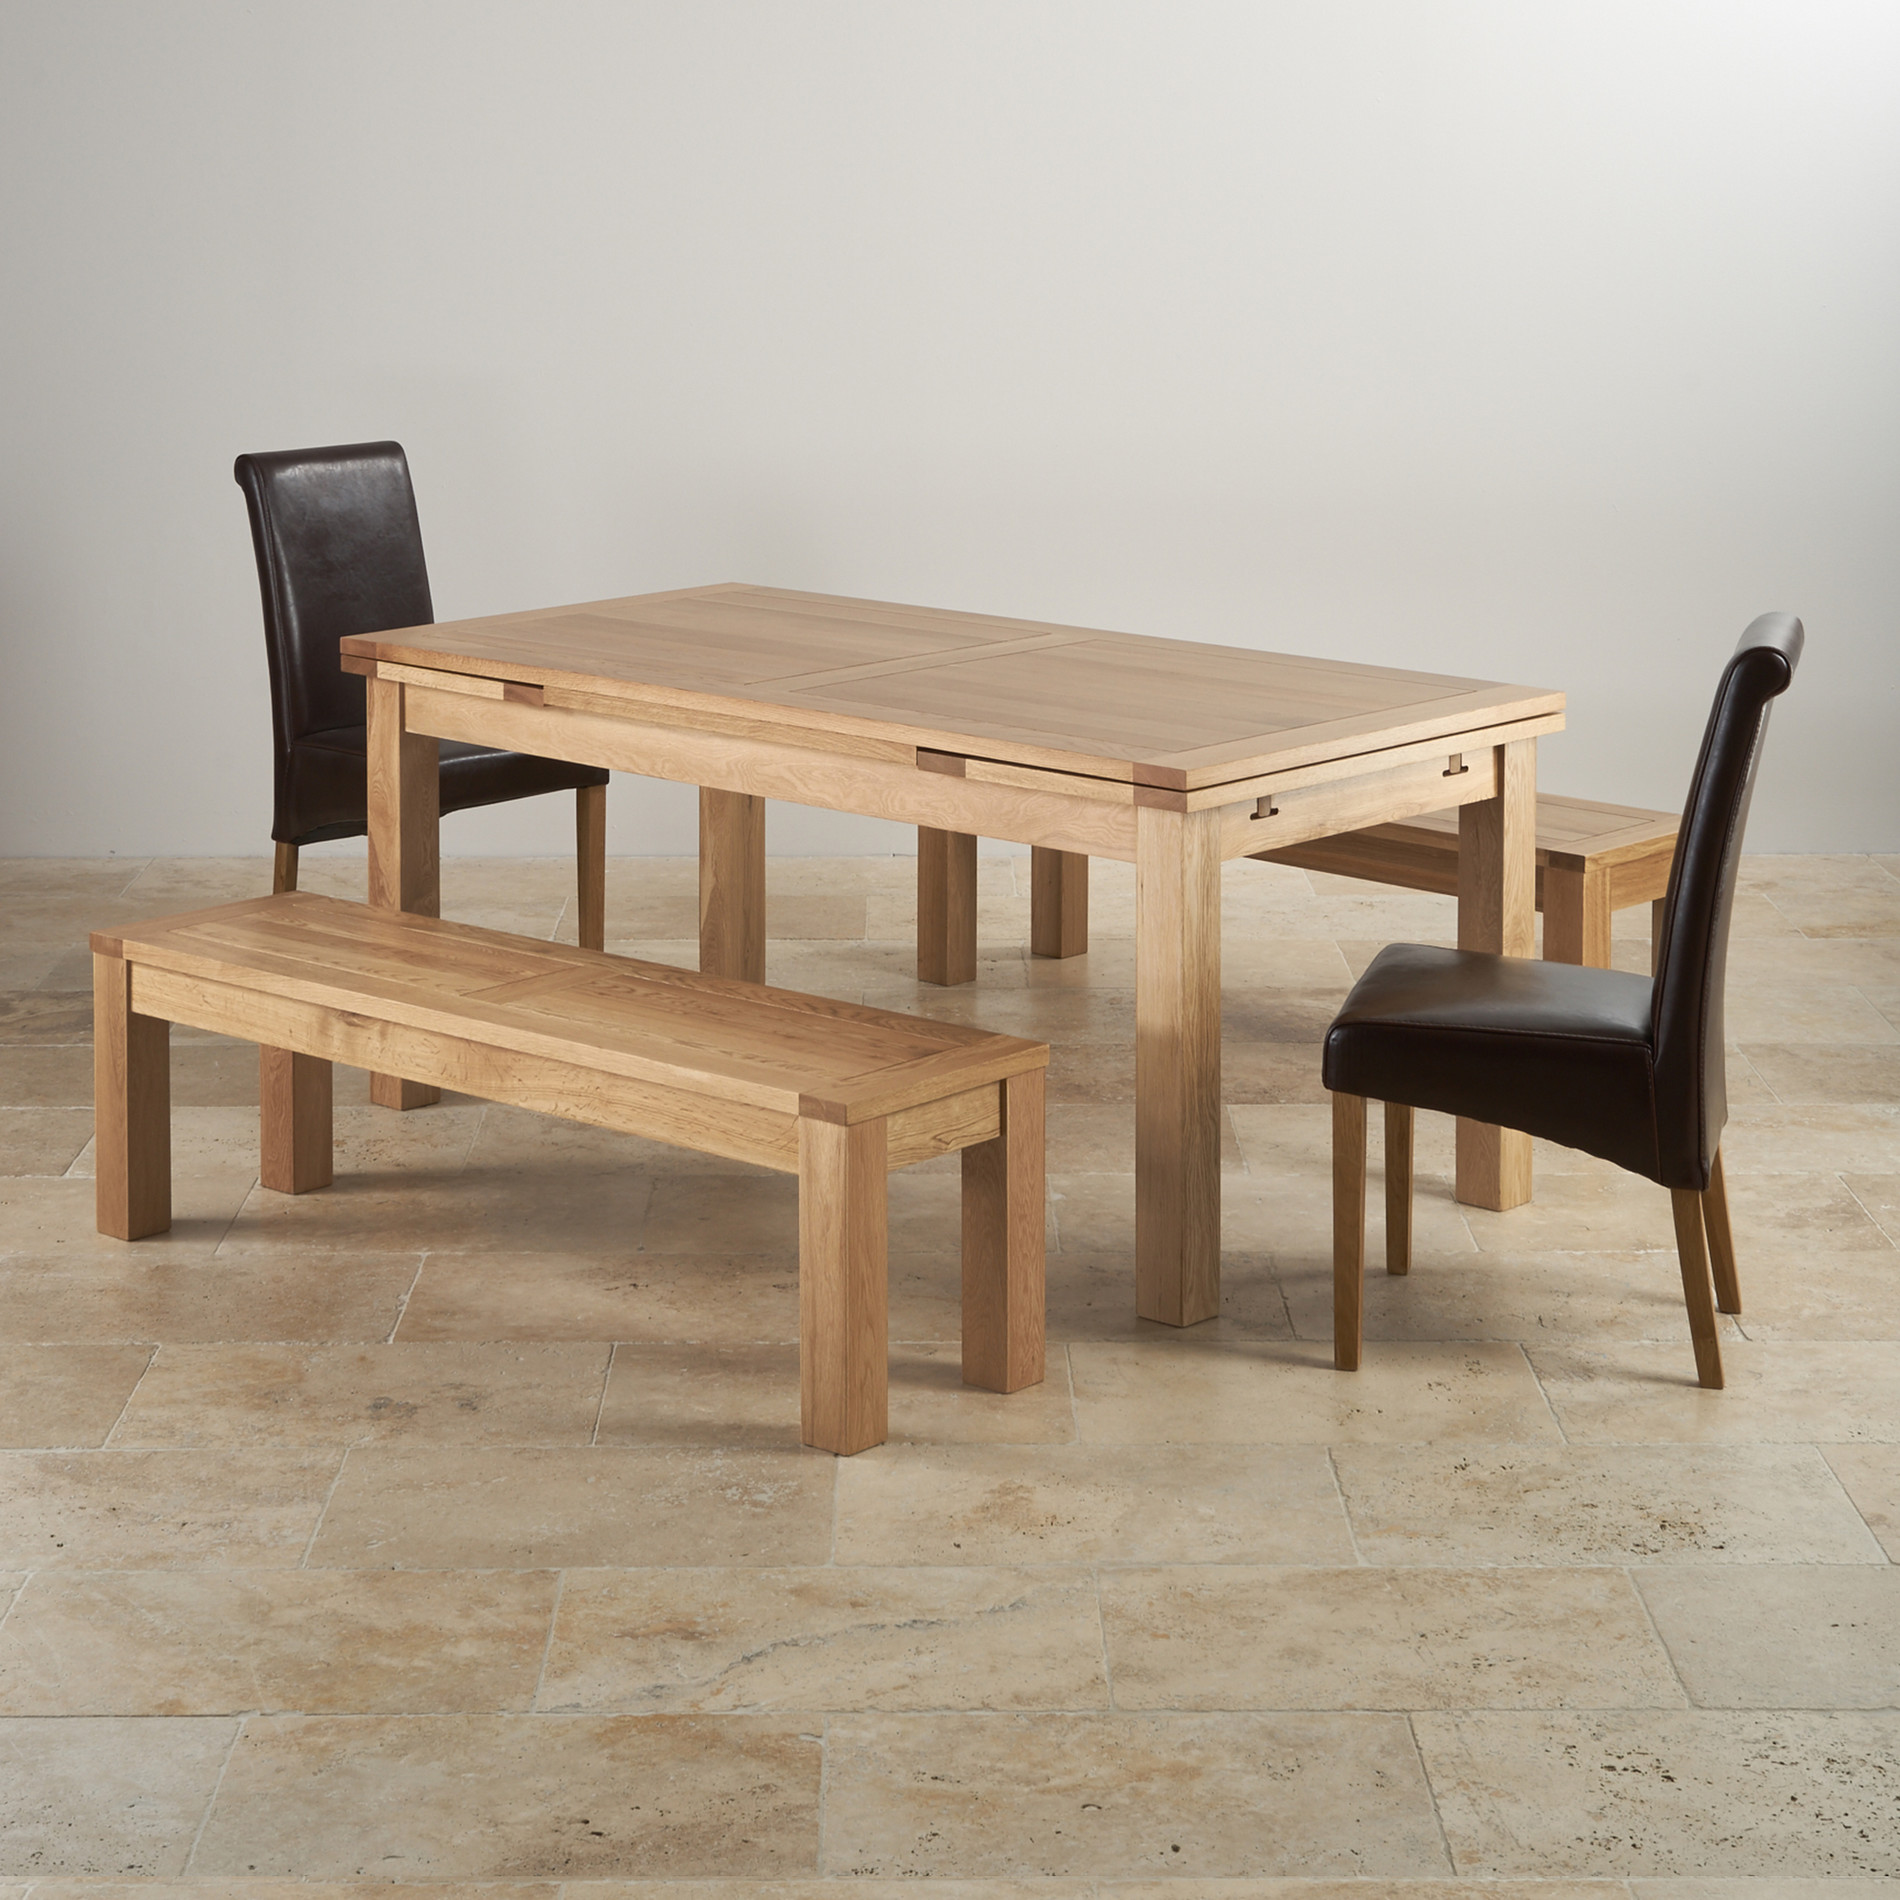 Dining Table With Two Chairs: Dorset Dining Set In Oak: Dining Table + 2 Benches & 2 Chairs